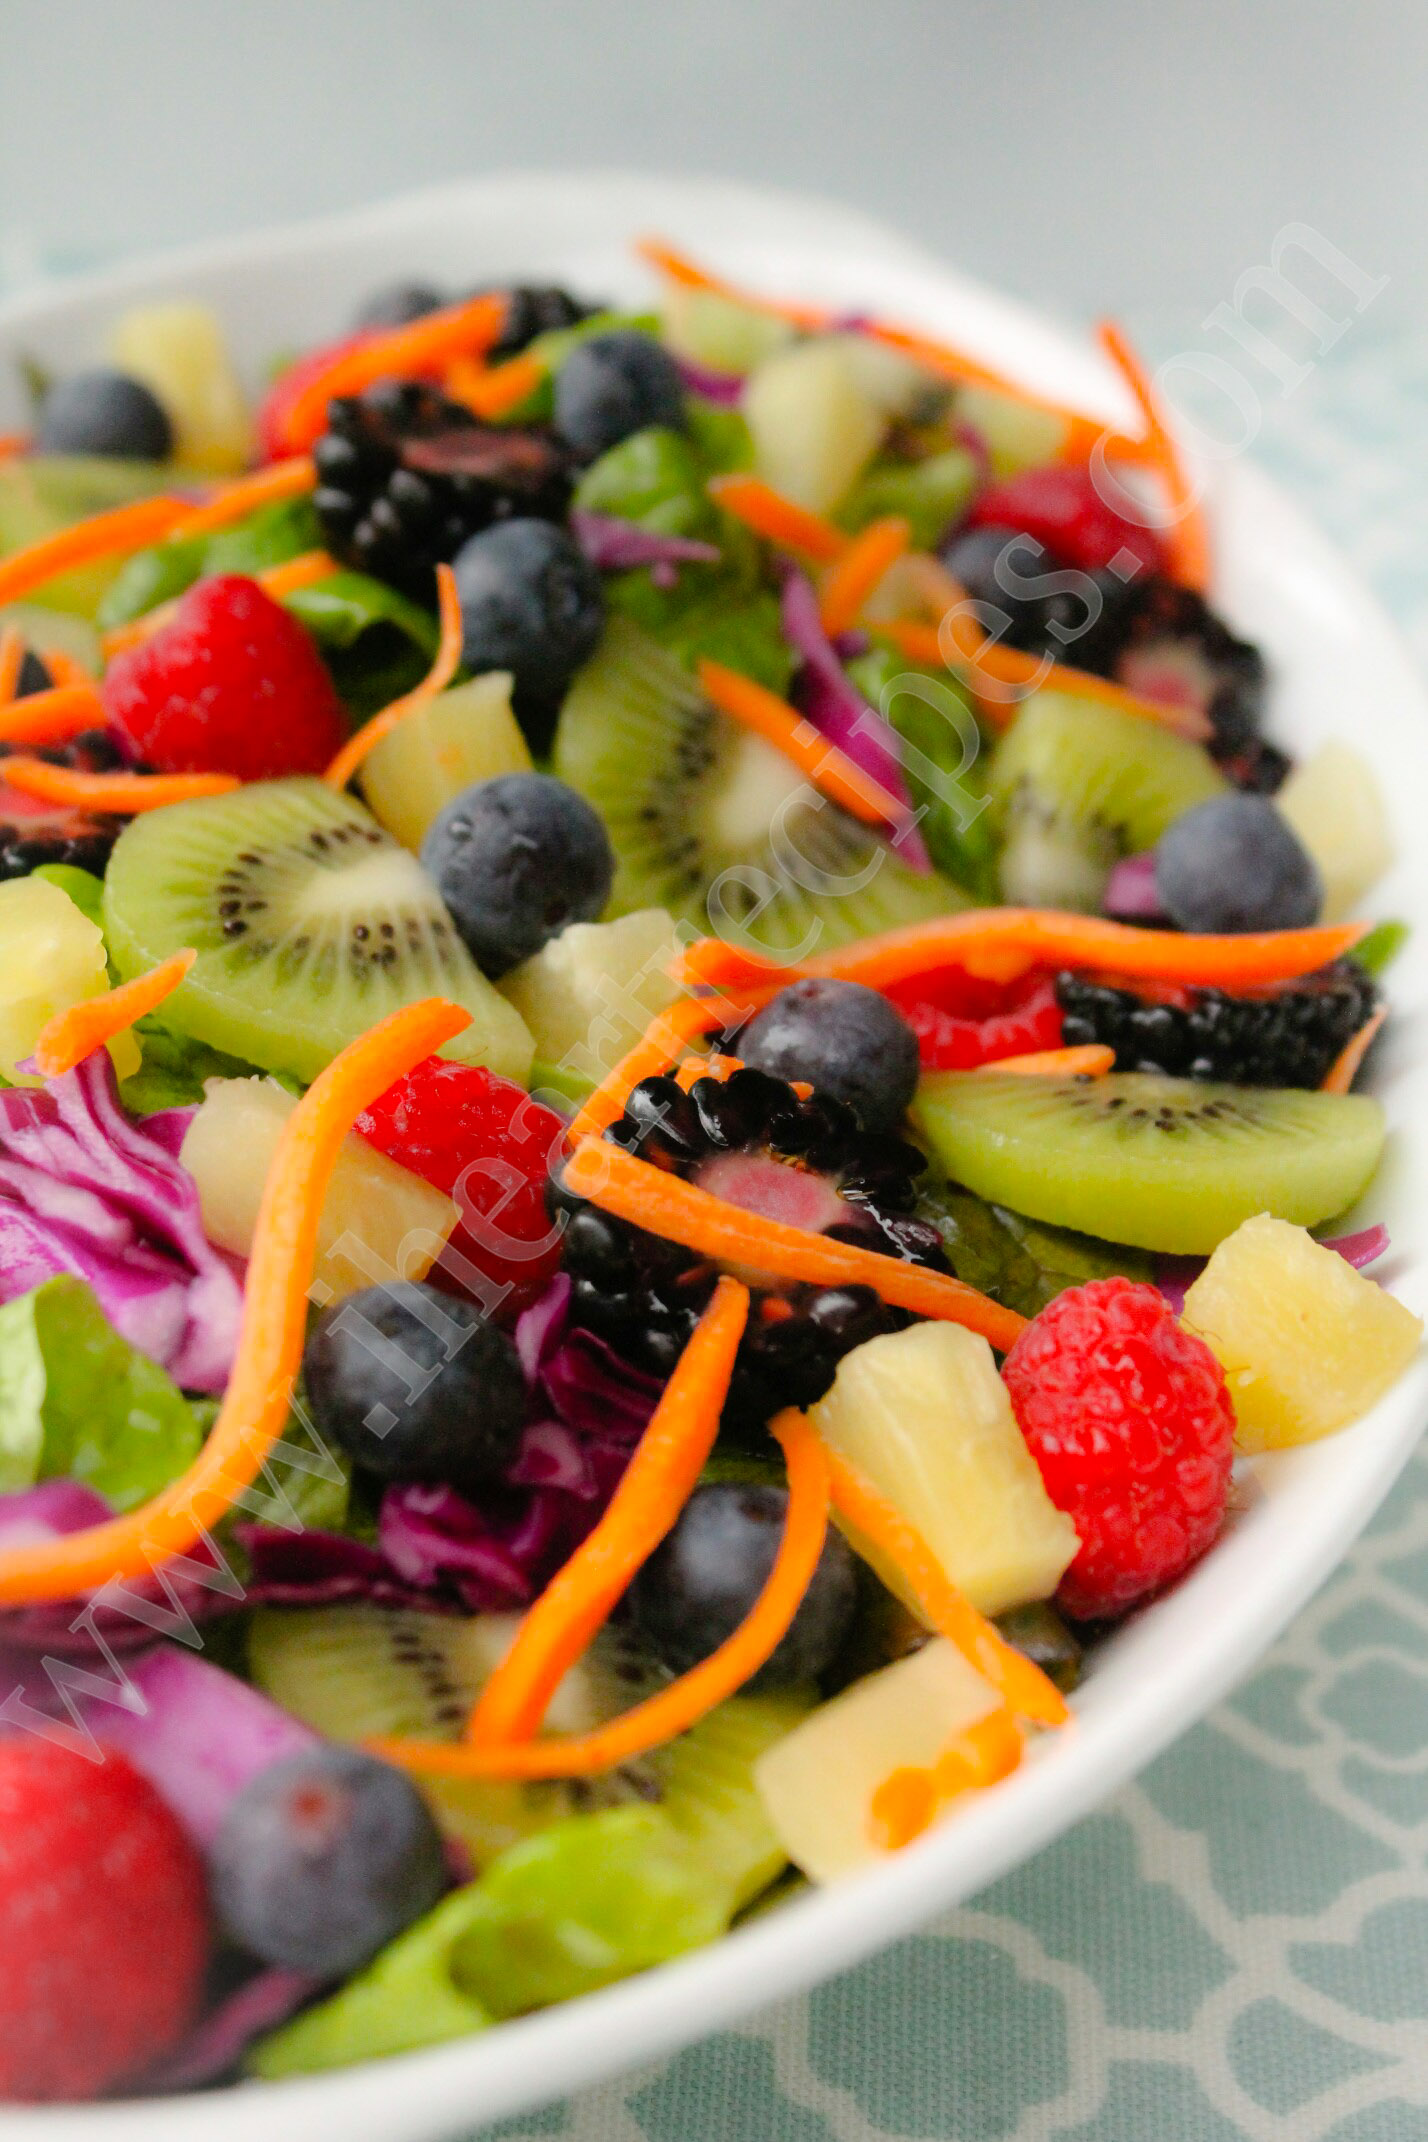 This delicious fresh fruit salad served over a bed of red cabbage and crispy lettuce is a spring treat